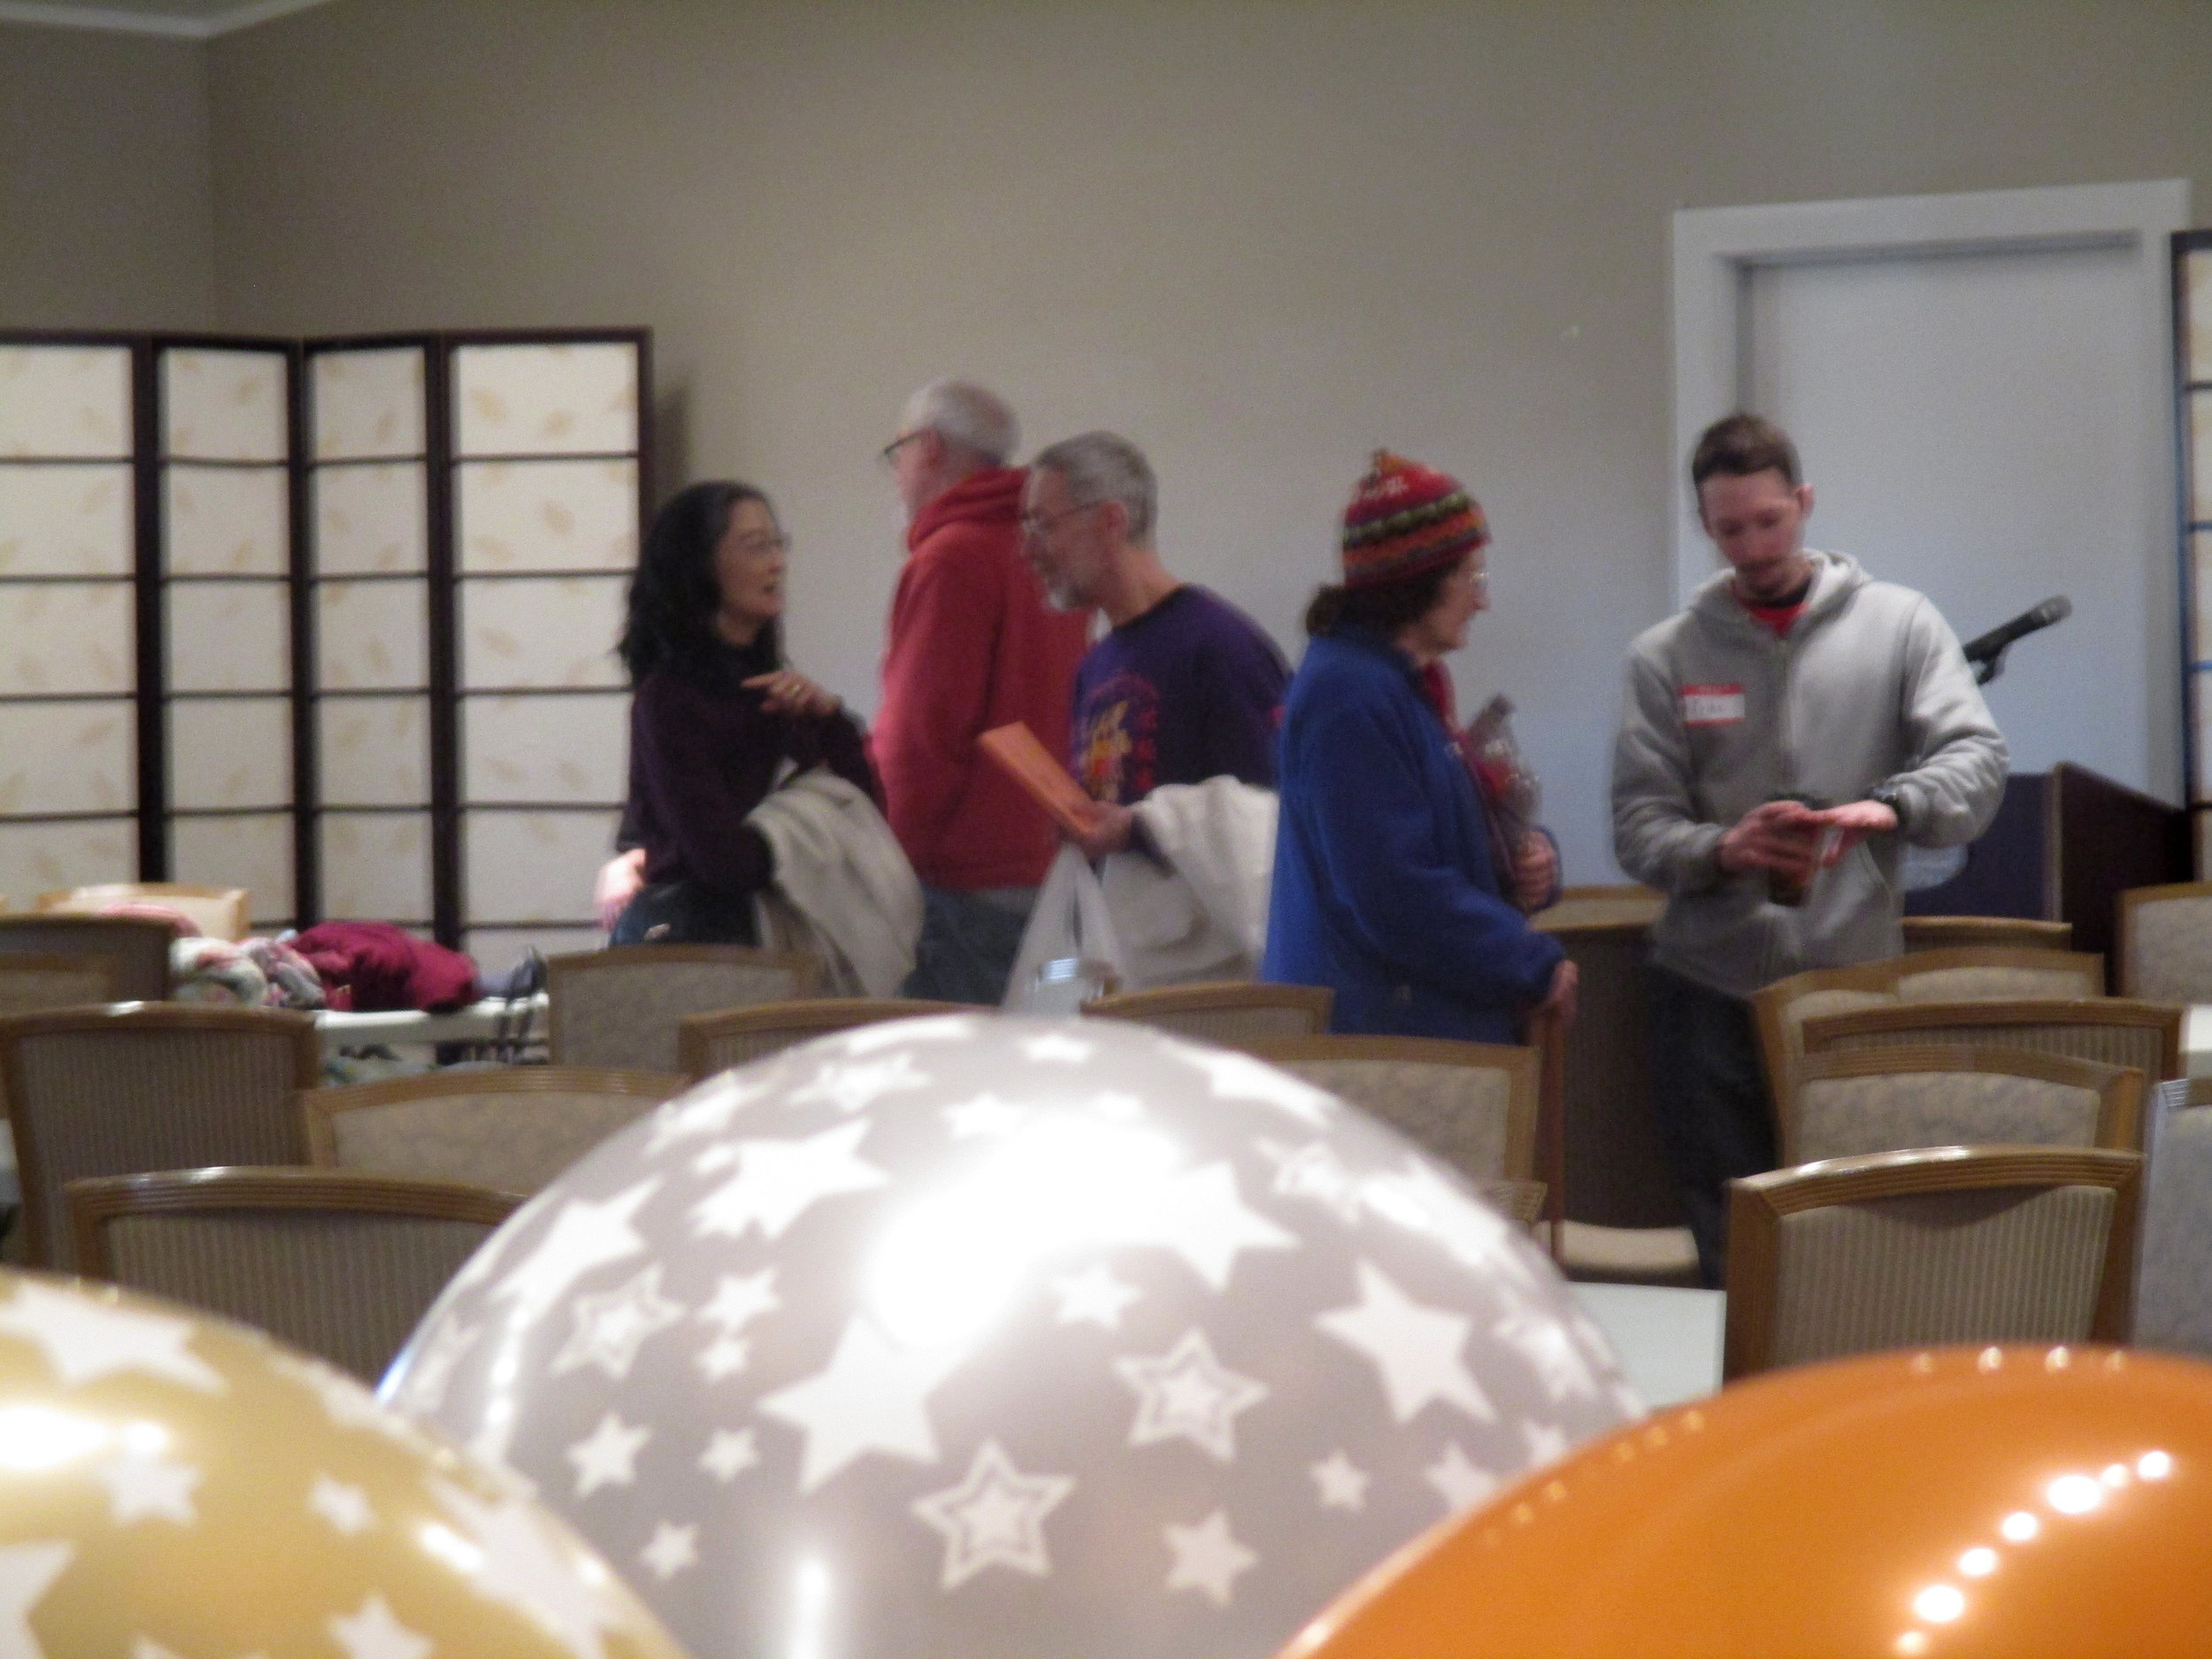 Party Balloons and departing guests